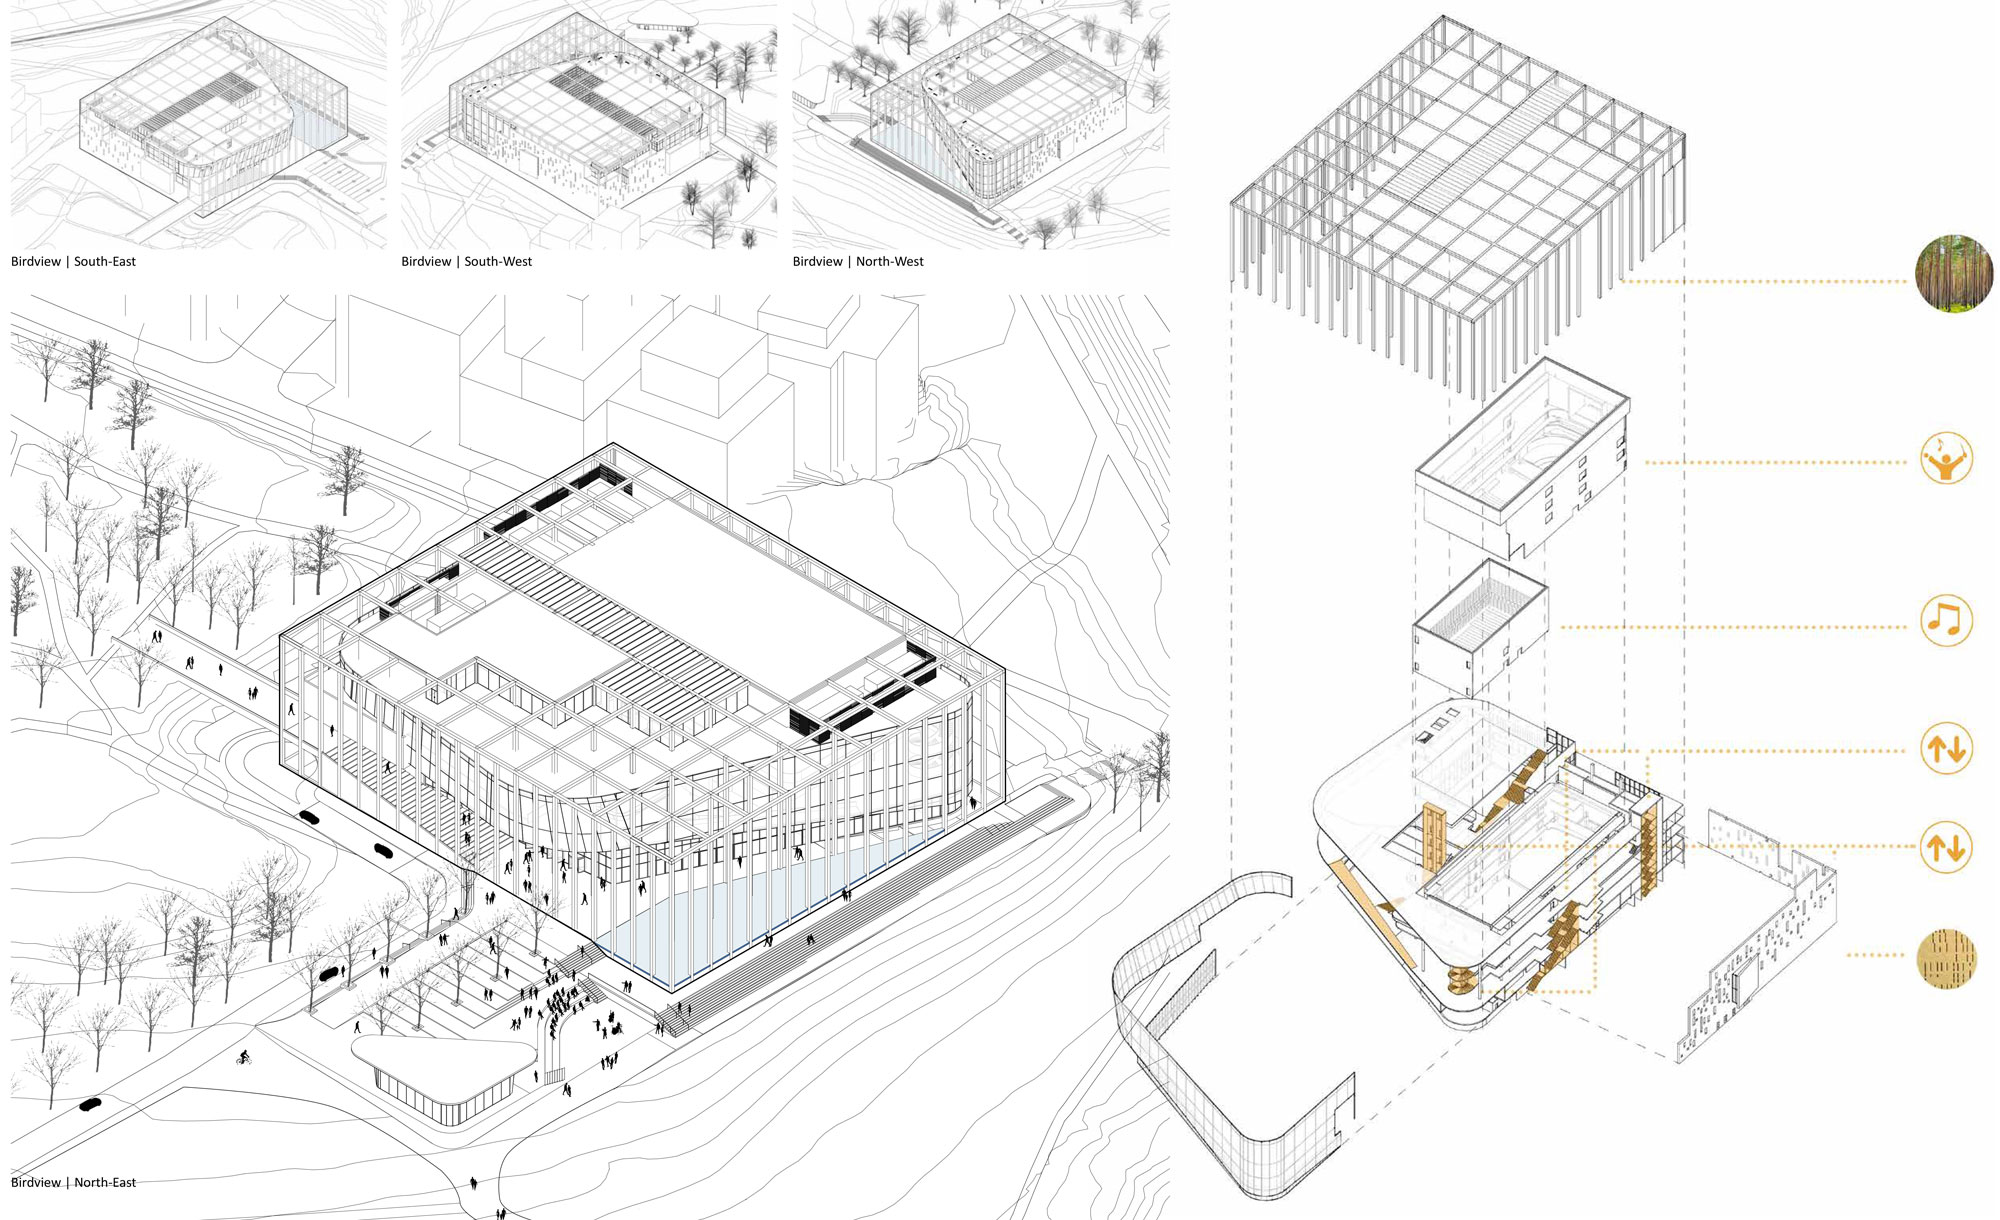 AR_Architecture_National_concert_hall_Sketches&Plans_007